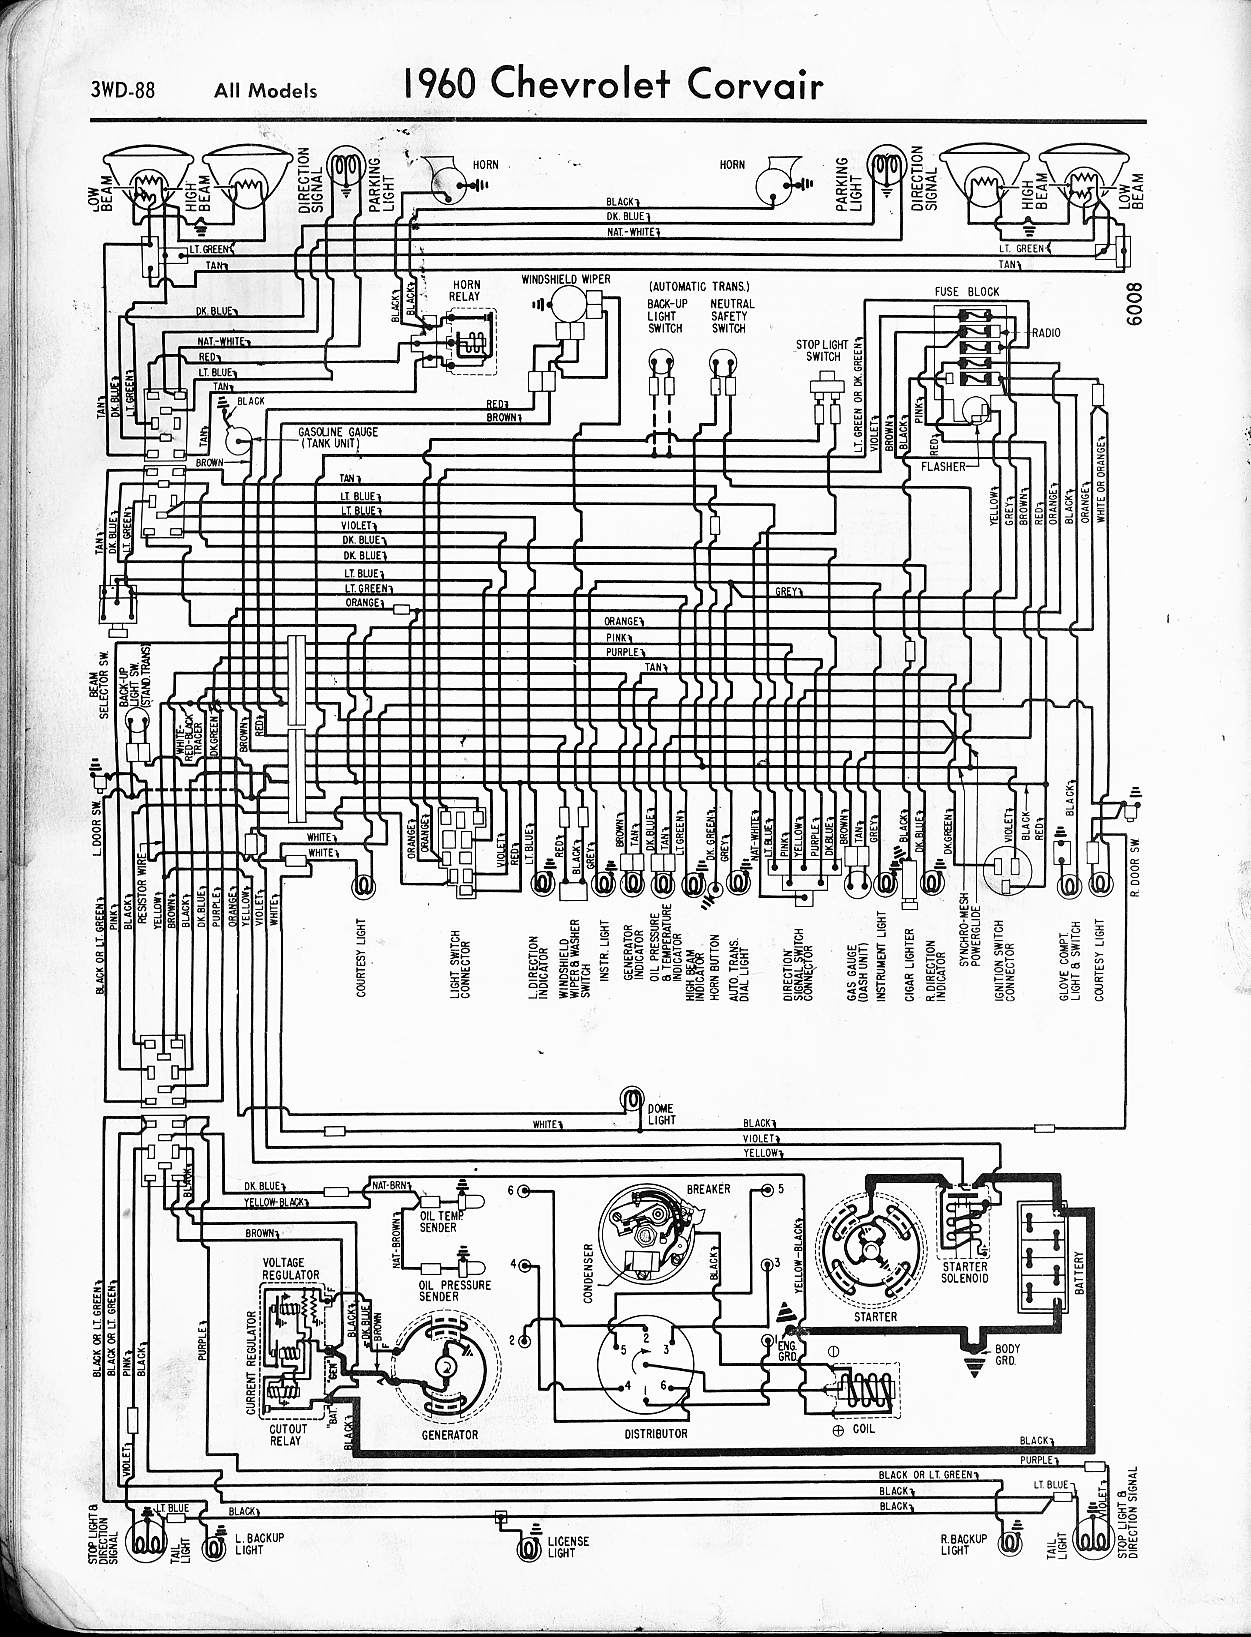 2c11 1960 Chevy Ignition Switch Wiring Diagram Wiring Resources